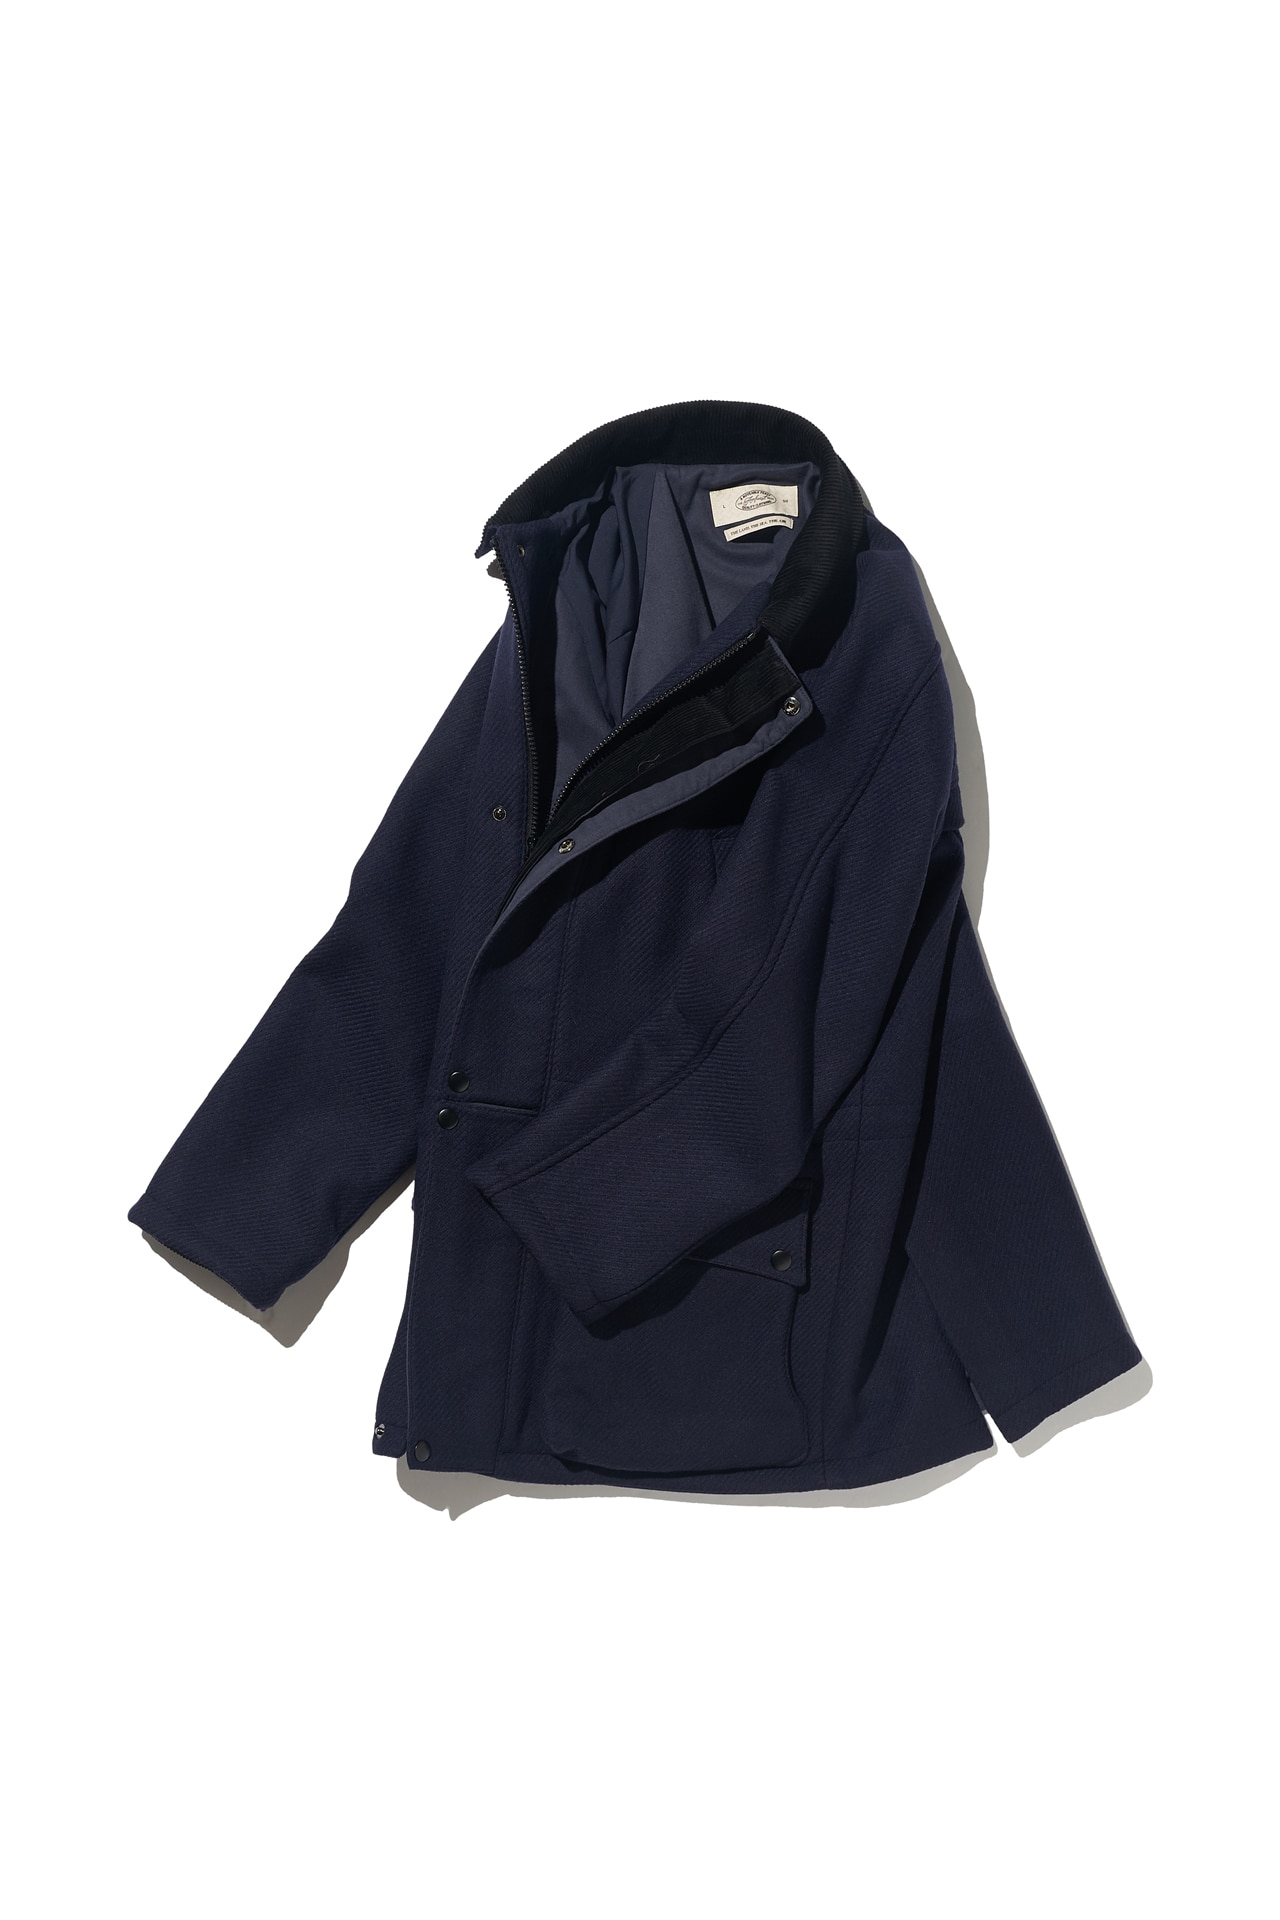 [Amfeast] NAVY SOLID SIGNATURE CITY HALF COAT